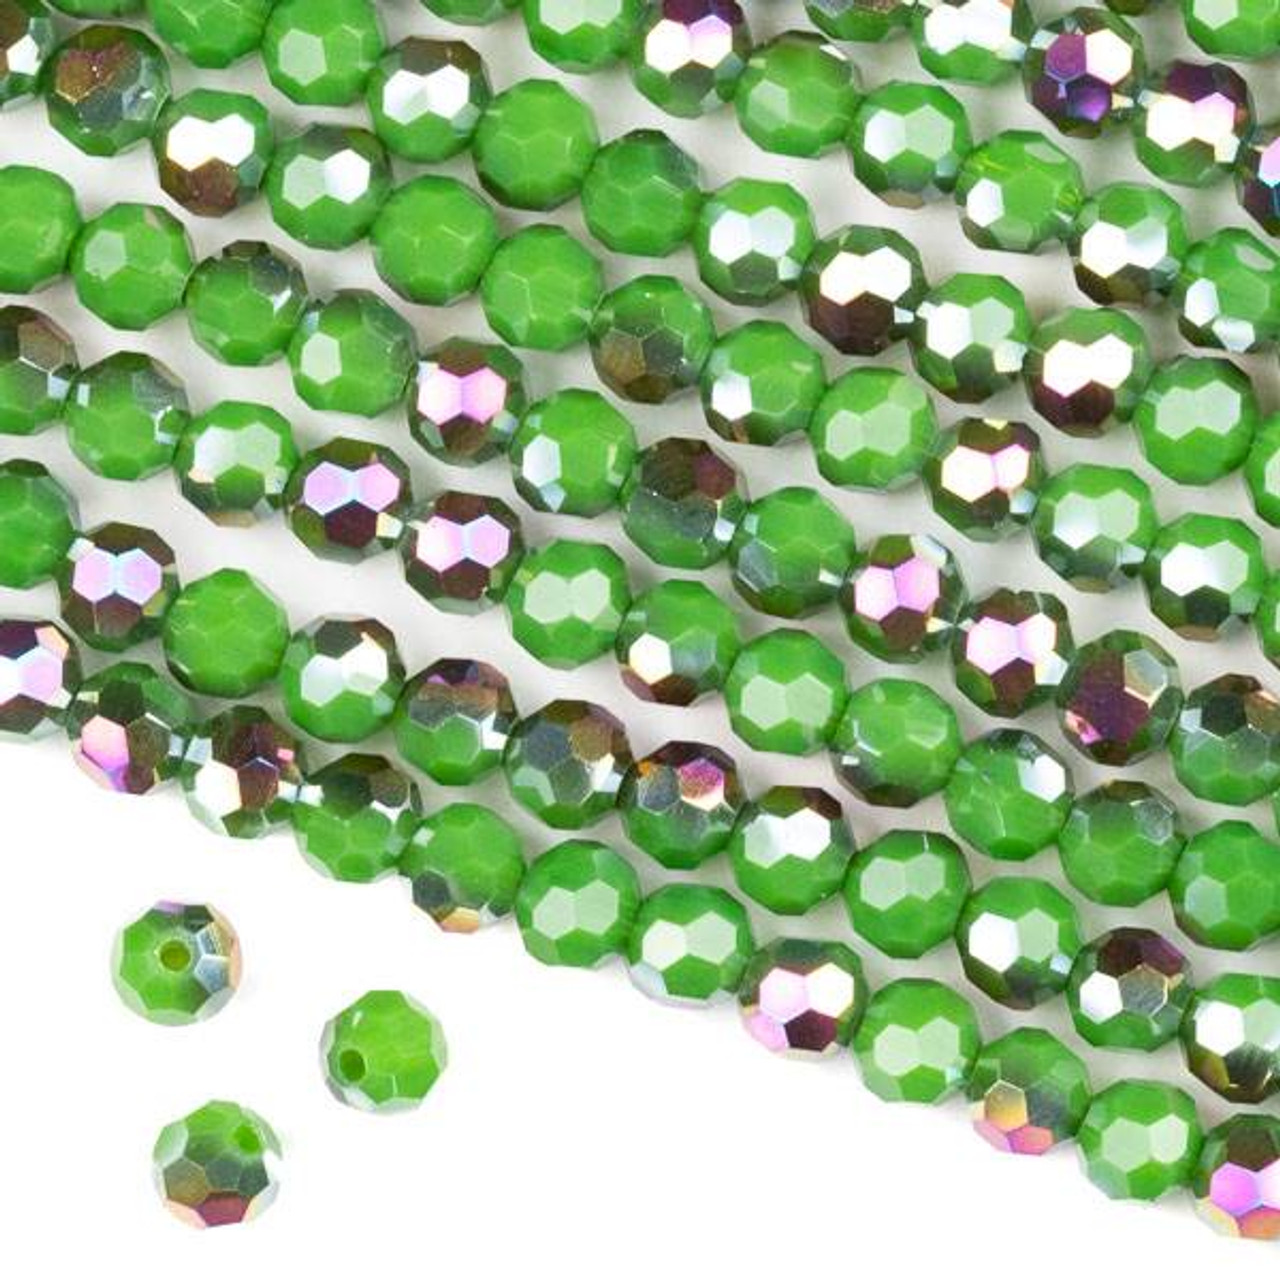 8 Inch Long Strand PARROT GREEN QUARTZ Micro Faceted Rondells,6mm Long,Great Price Amazing Item